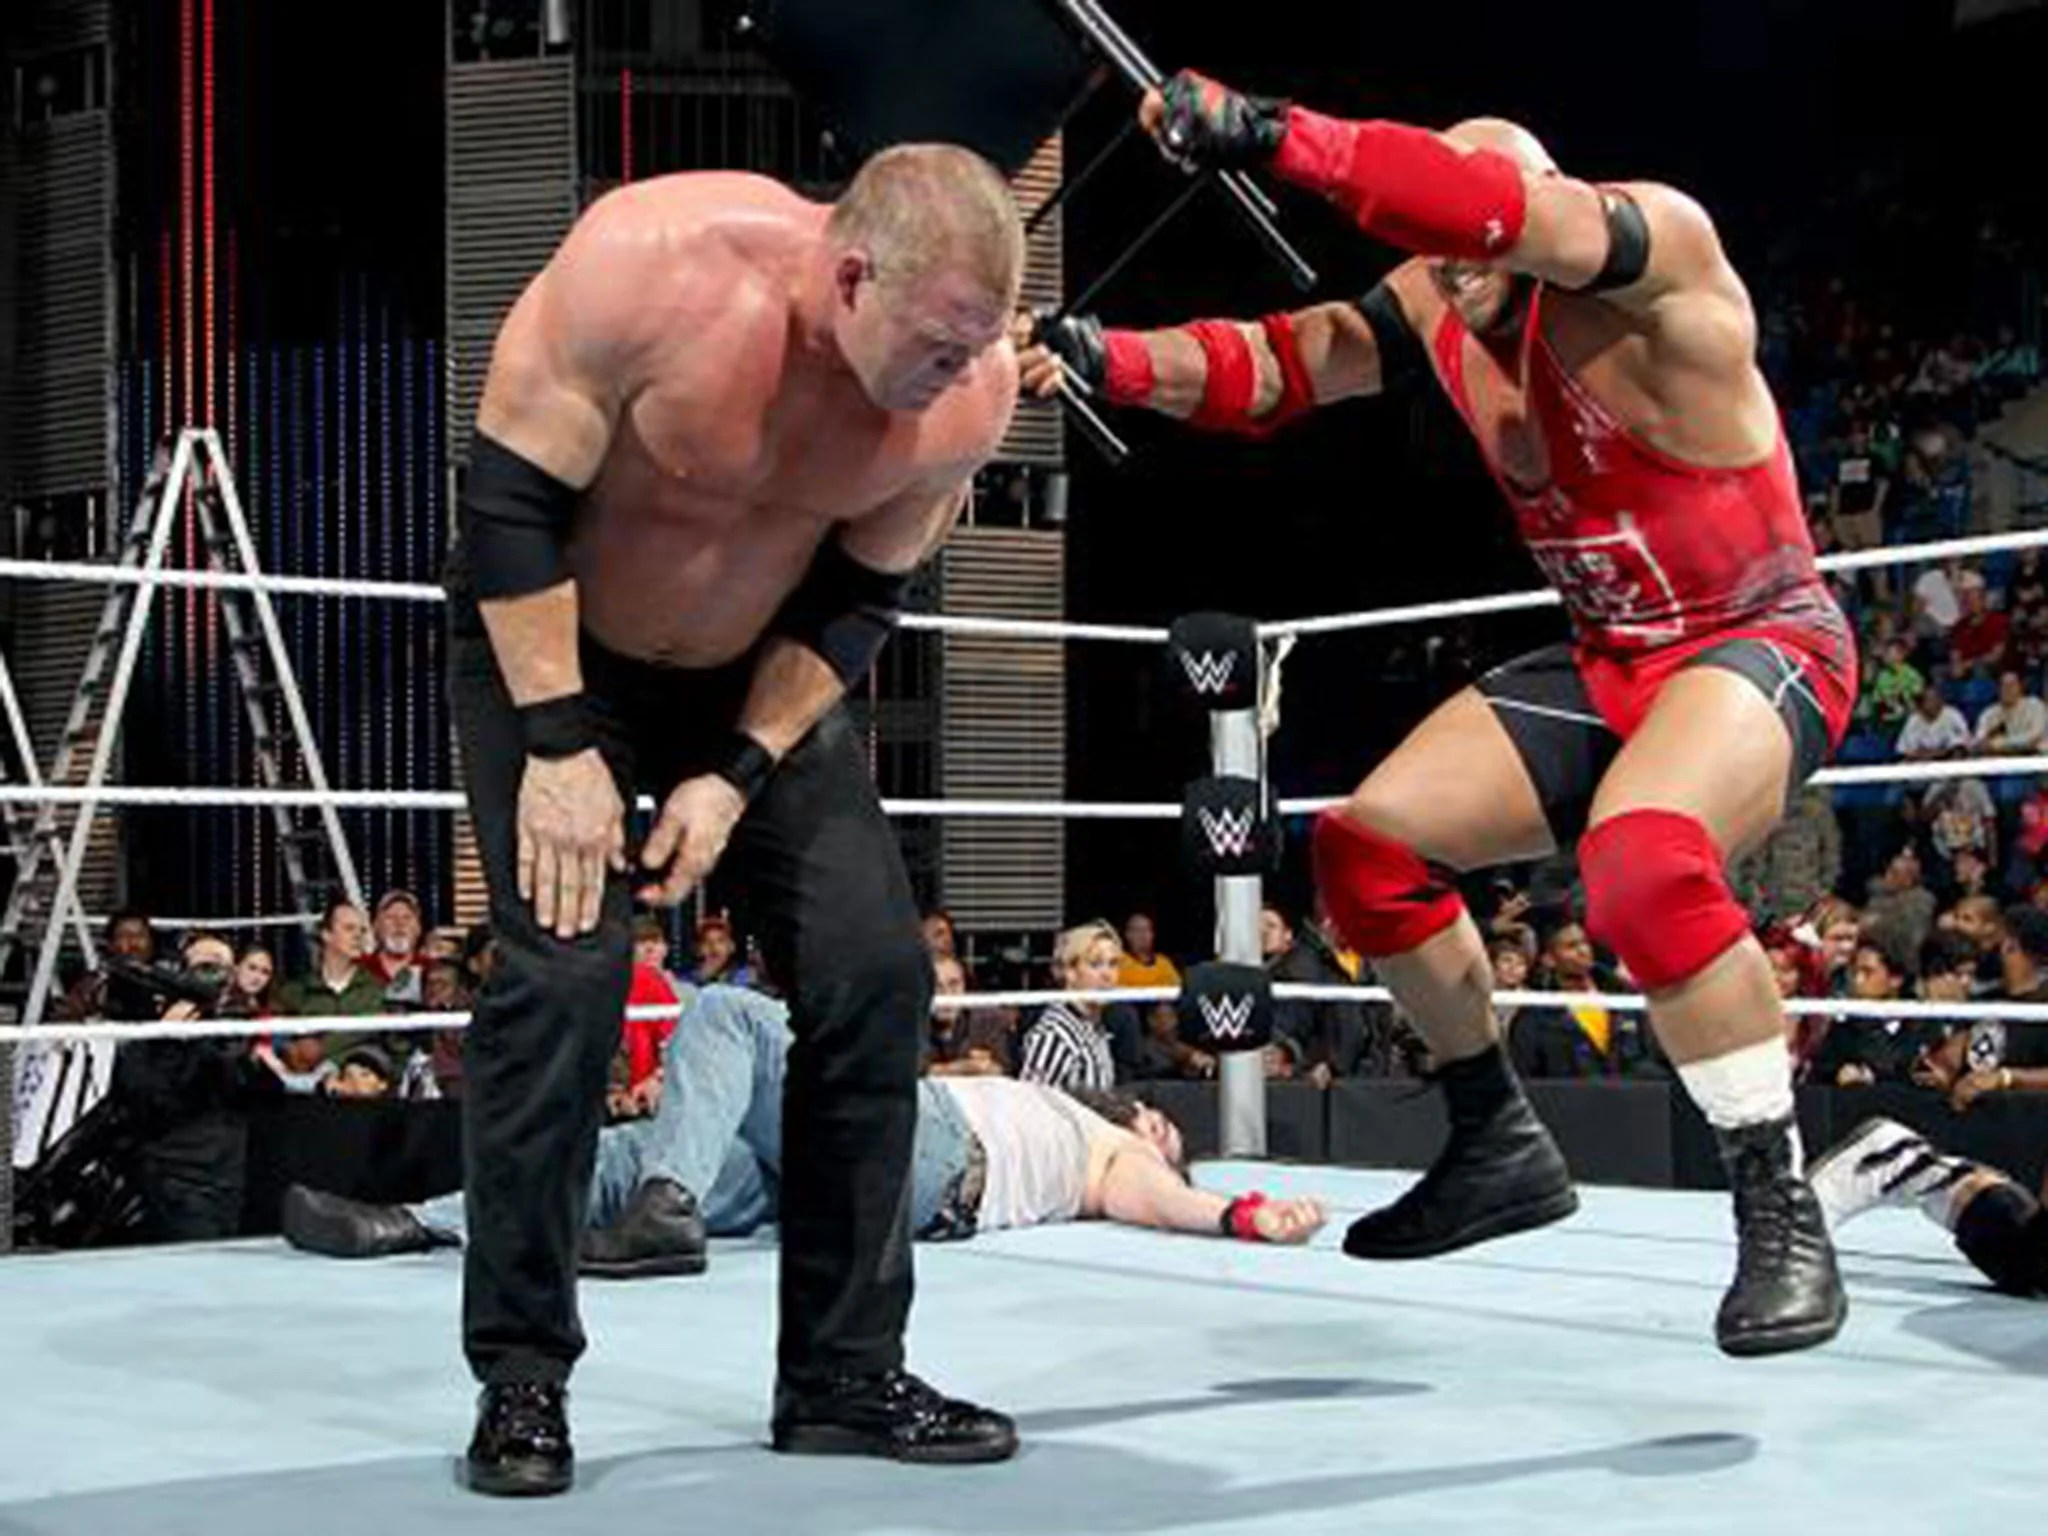 steel chair used in wwe costco tables and chairs smackdown results dolph ziggler flies high six man